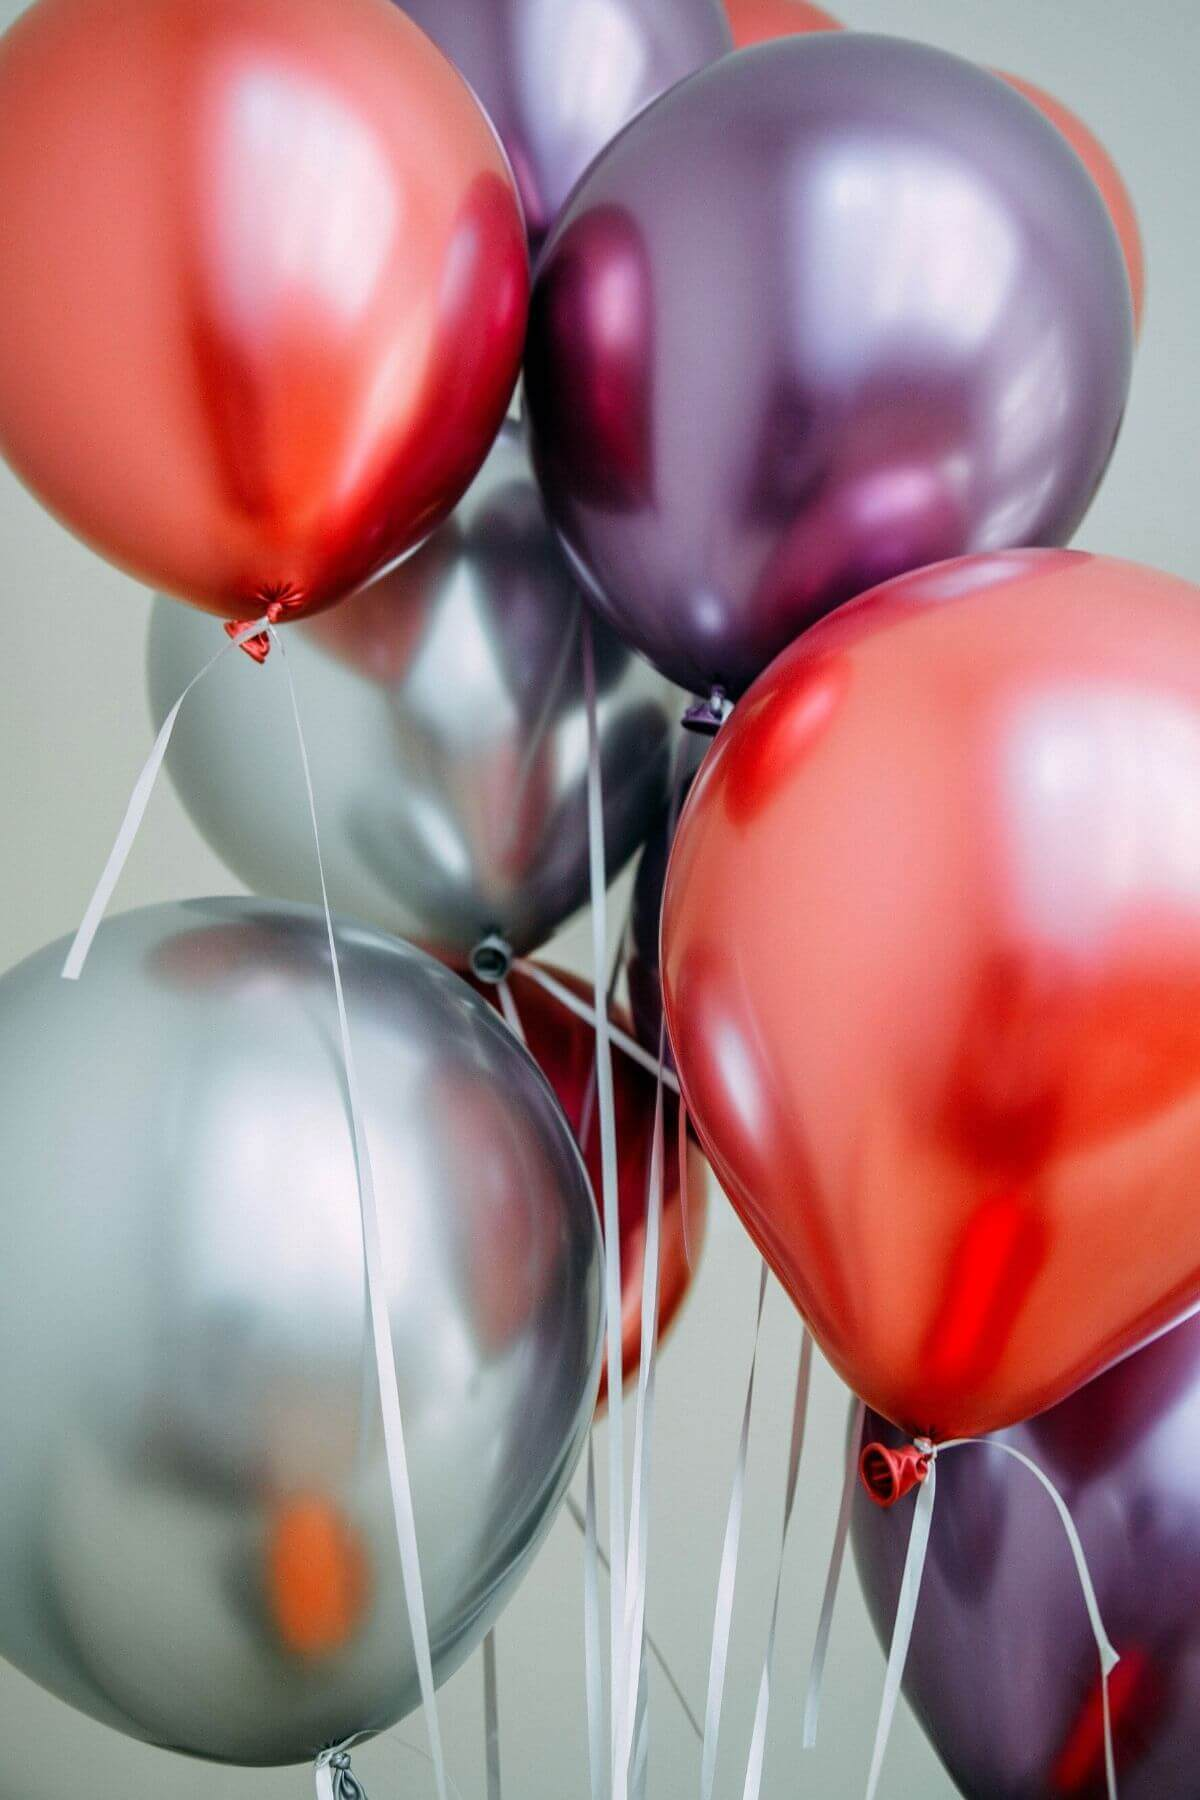 Balloons decorating an adult party